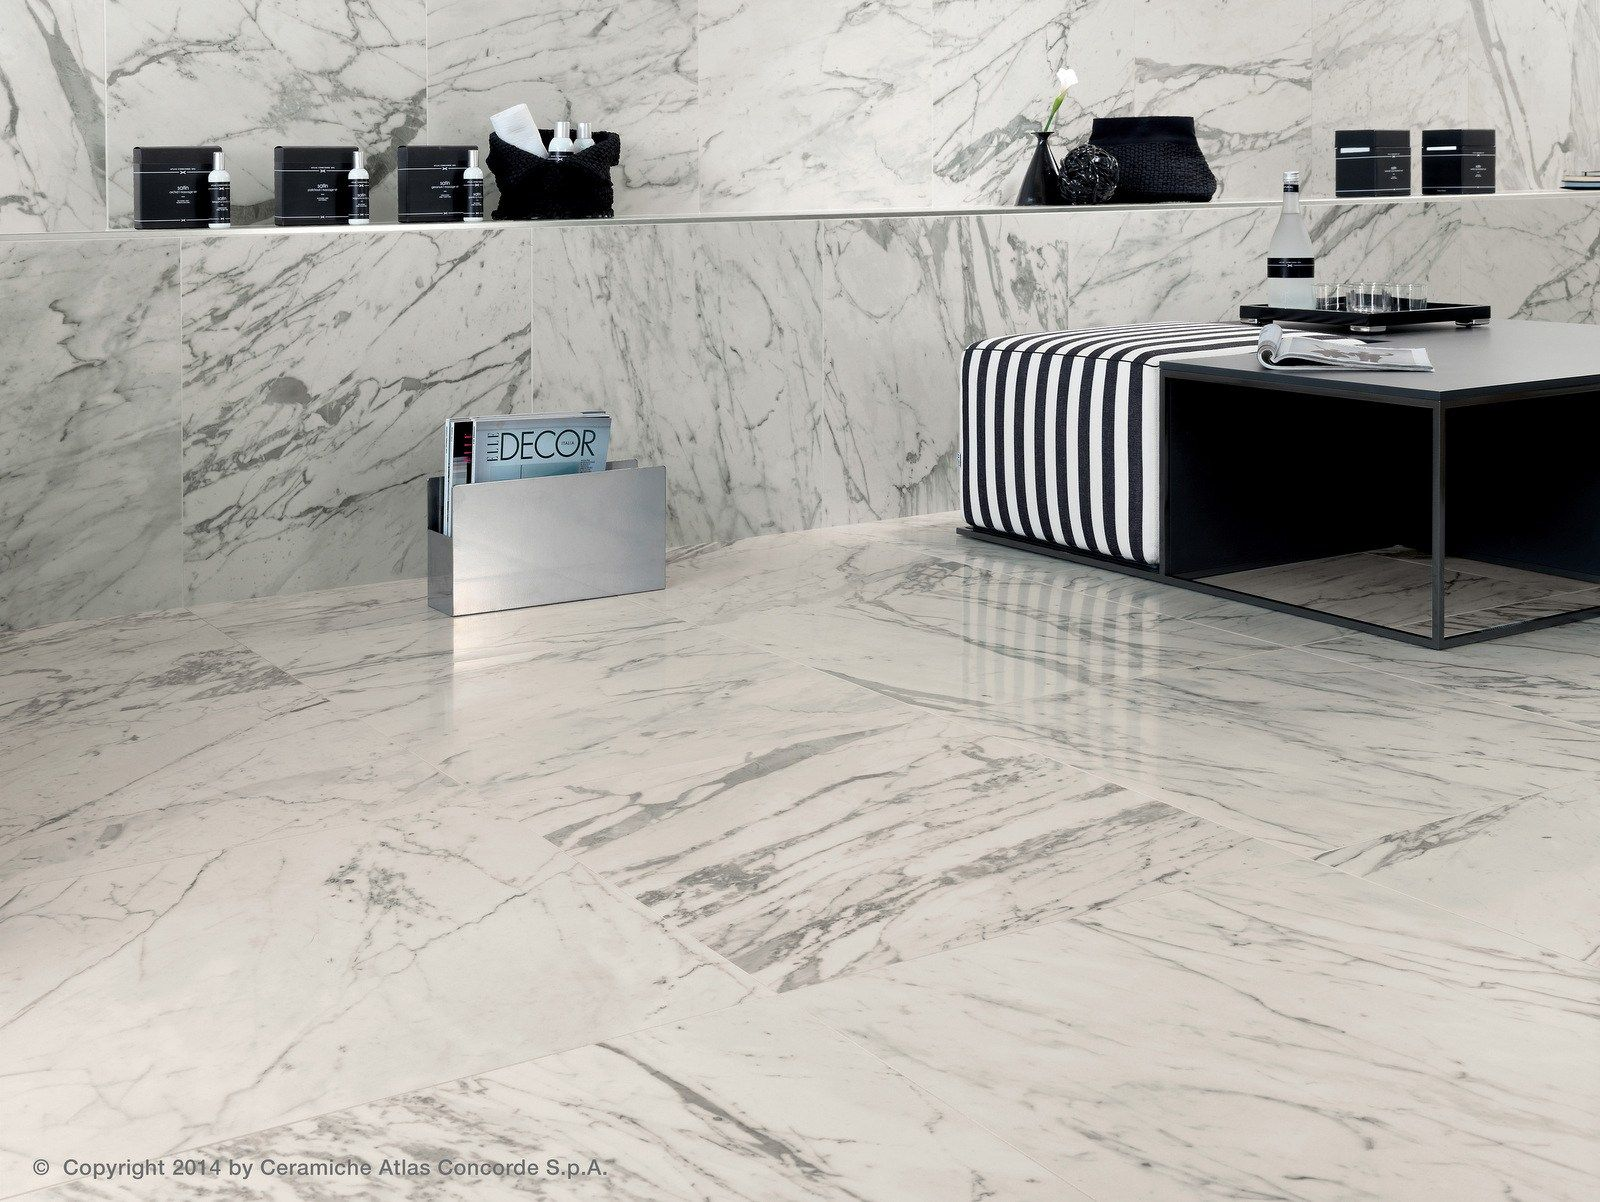 Indooroutdoor porcelain stoneware floor tiles with marble effect indooroutdoor porcelain stoneware floor tiles with marble effect marvel pro porcelain stoneware collection by dailygadgetfo Image collections